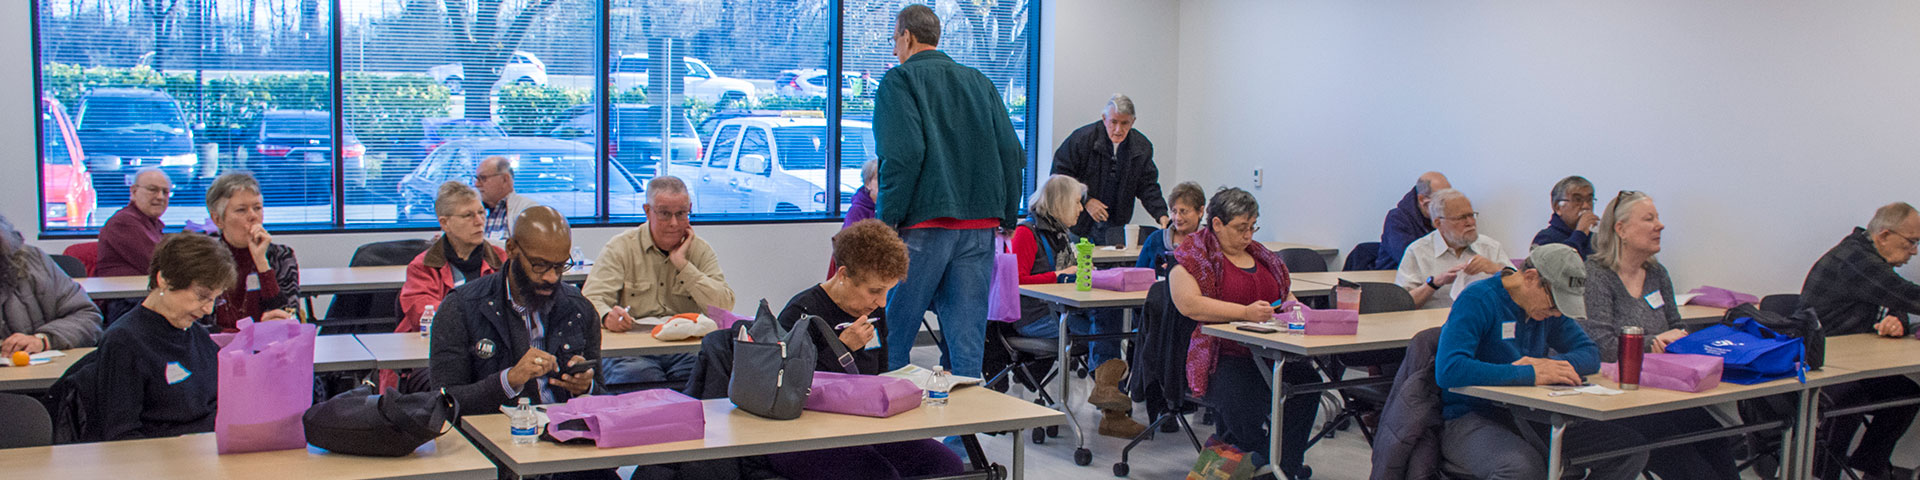 Lifelong Learning classes for age 50+ learners at Montgomery College, Maryland